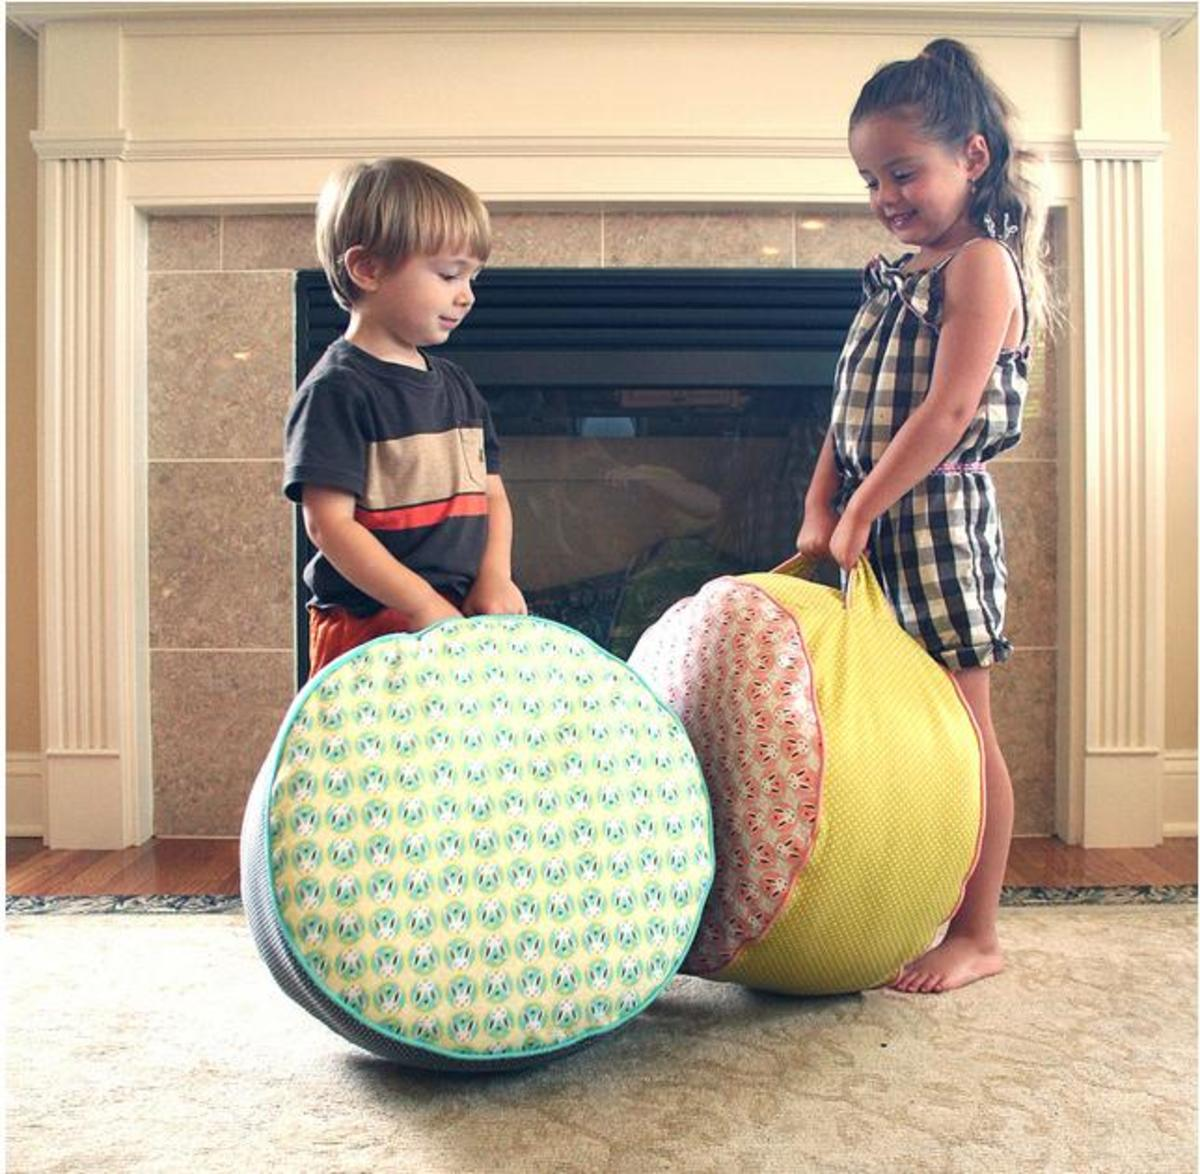 How To Make Bean Bags Pillow Chairs Amp Floor Cushions